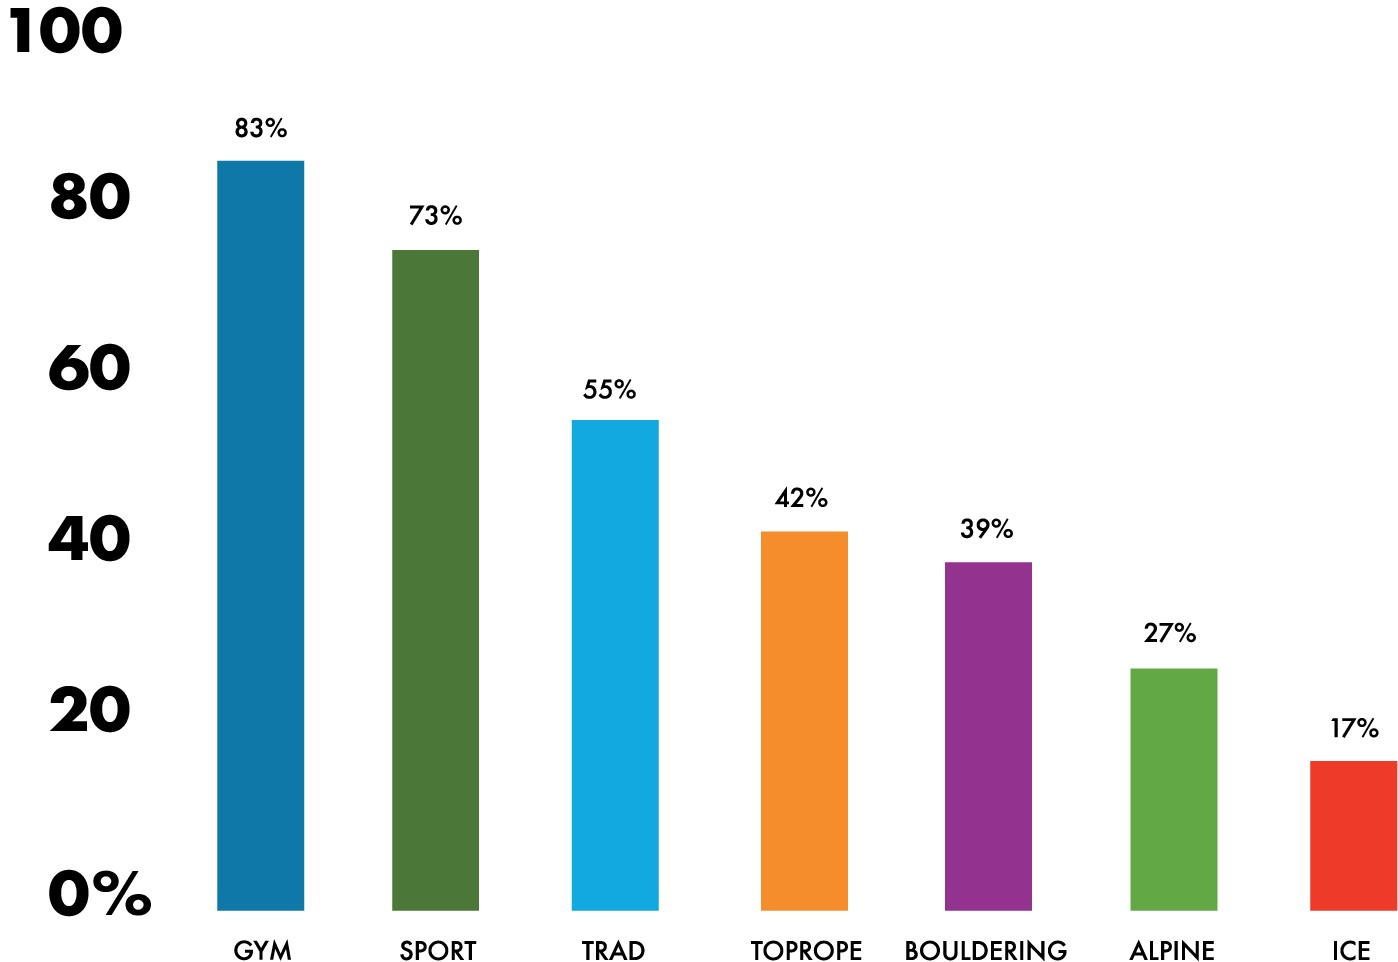 Type: Breakdown of types of climbing that respondents engaged in